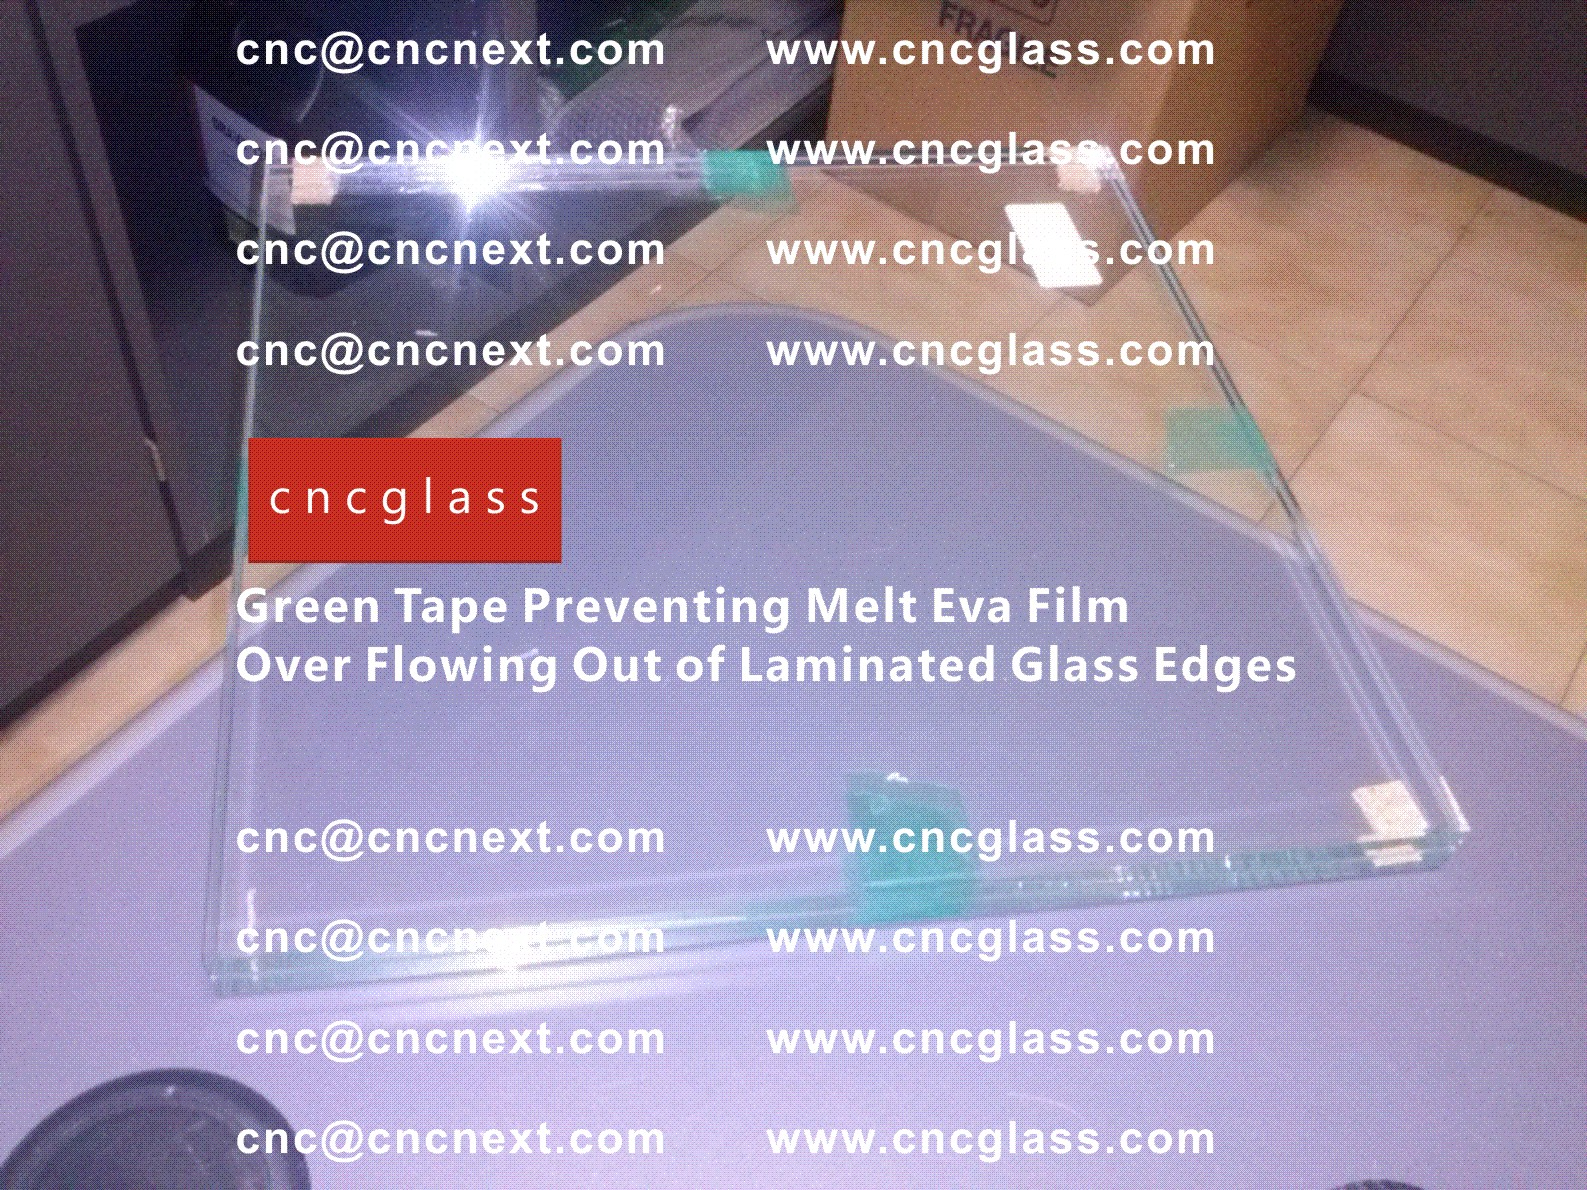 007 Green Tape Preventing Melt Eva Film Over Flowing Out of Laminated Glass Edges